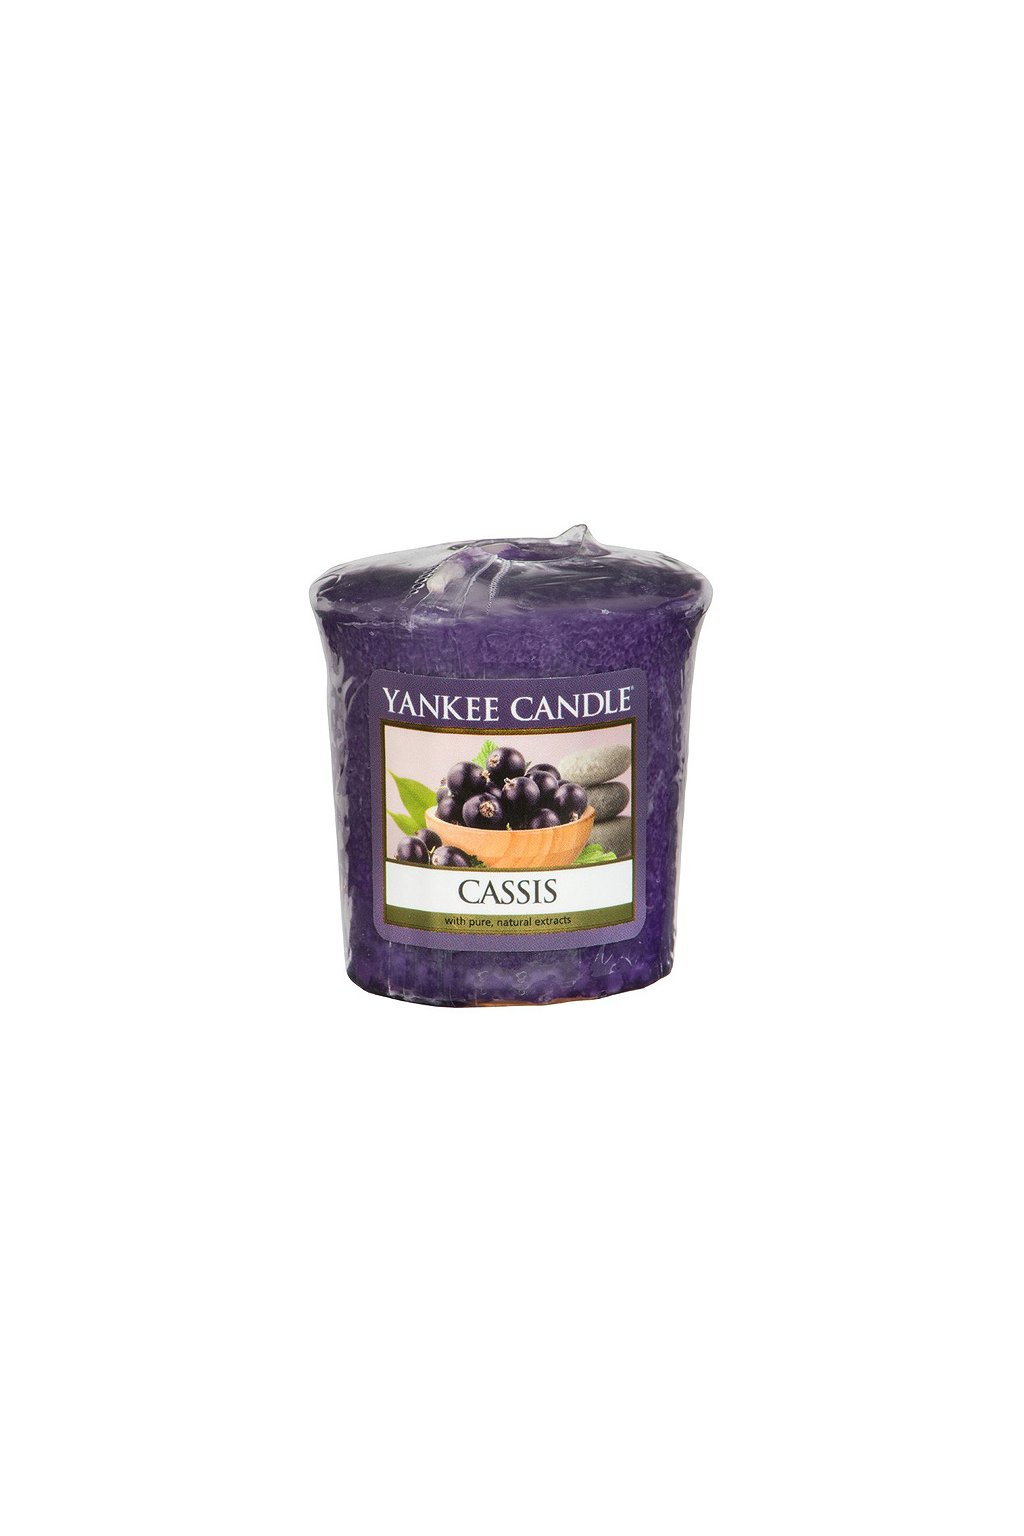 Yankee Candle Cassis 49g